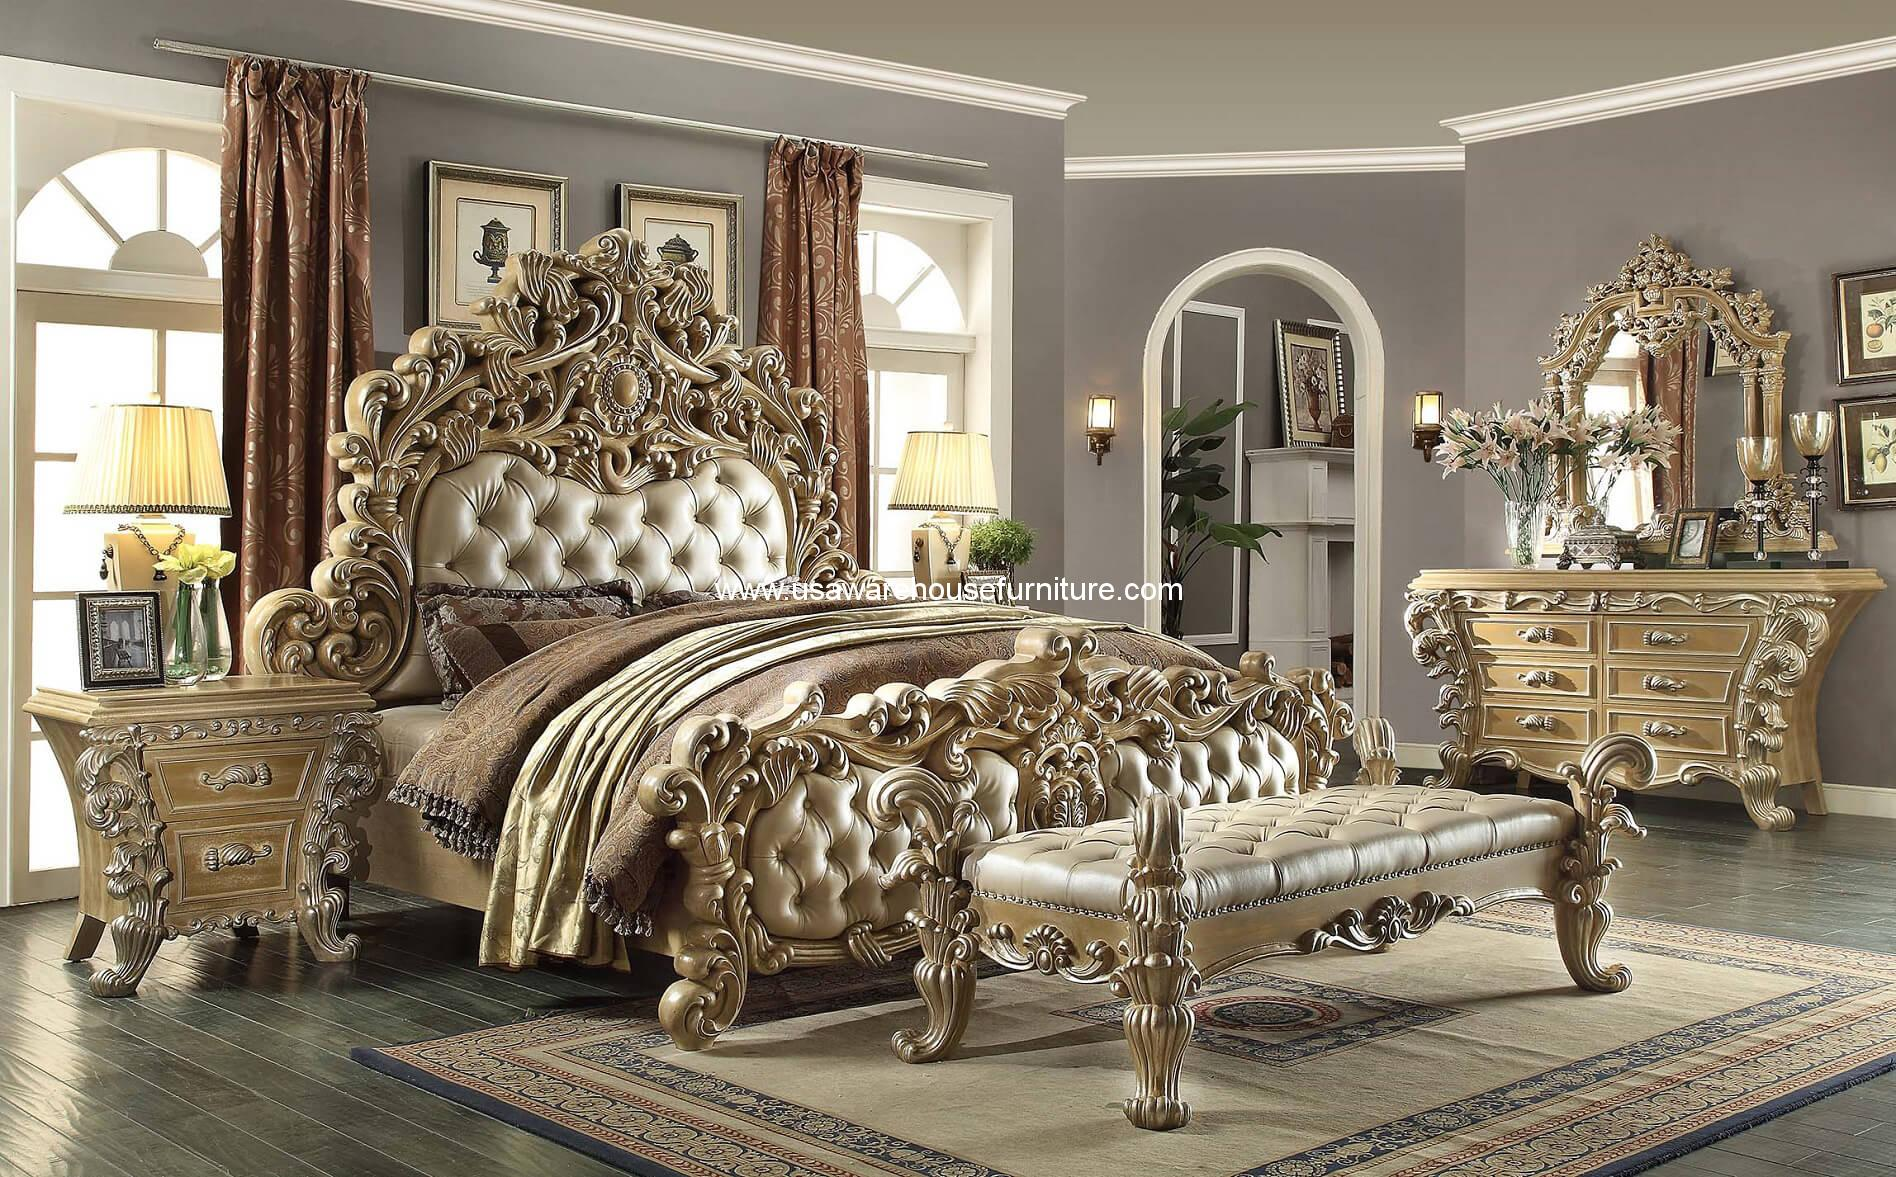 5 Piece Royal Kingdom HD-7012 Bedroom Set - USA Warehouse Furniture